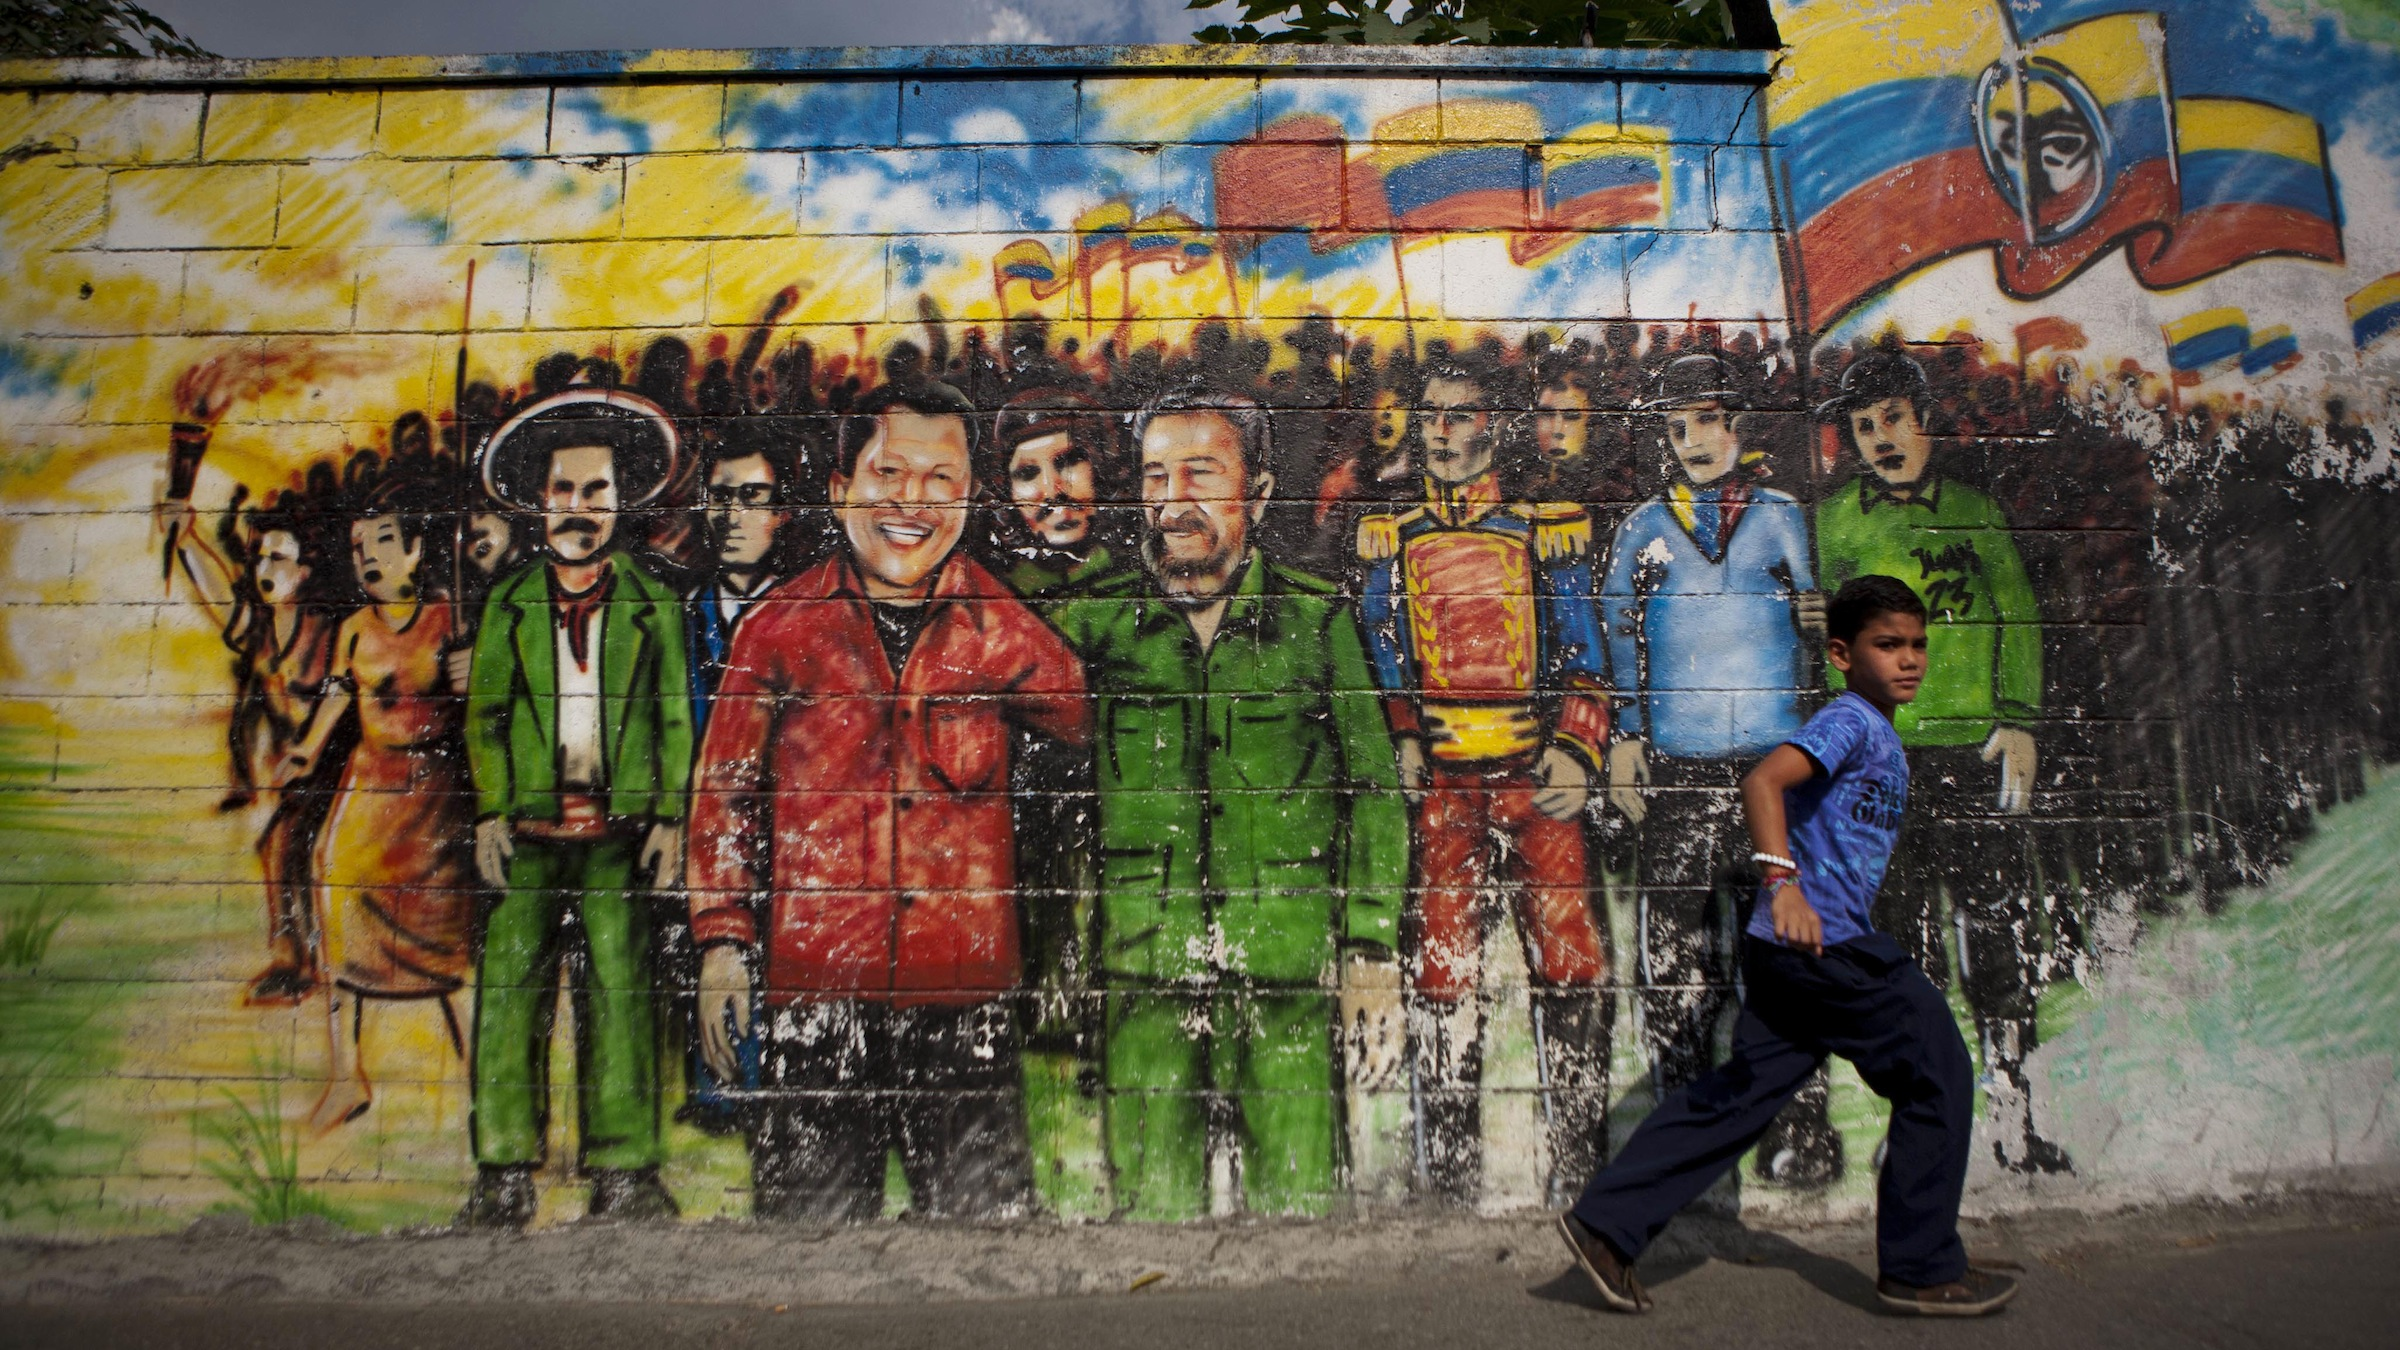 """A youth walks past a mural depicting Venezuela's President Hugo Chavez, center left in a red shirt, standing with Cuba's leader Fidel Castro in Caracas, Venezuela, Wednesday Feb. 22, 2012. Chavez told Venezuelans on Tuesday that doctors in Cuba had over the weekend found a lesion in the same place where they removed a cancerous tumor last year. Chavez, who hopes to extend his 13 years in power with another six-year term in the Oct. 7 elections, said the probability is high that the lesion is malignant and that he will likely need radiation therapy. Also in the mural are Venezuela's independence hero Simon Bolivar, third from right, Cuba's revolutionary hero Ernesto """"Che"""" Guevara, between Chavez and Castro, and Mexico's revolutionary hero Pancho Villa, left in hat. (AP Photo/Ariana Cubillos)"""